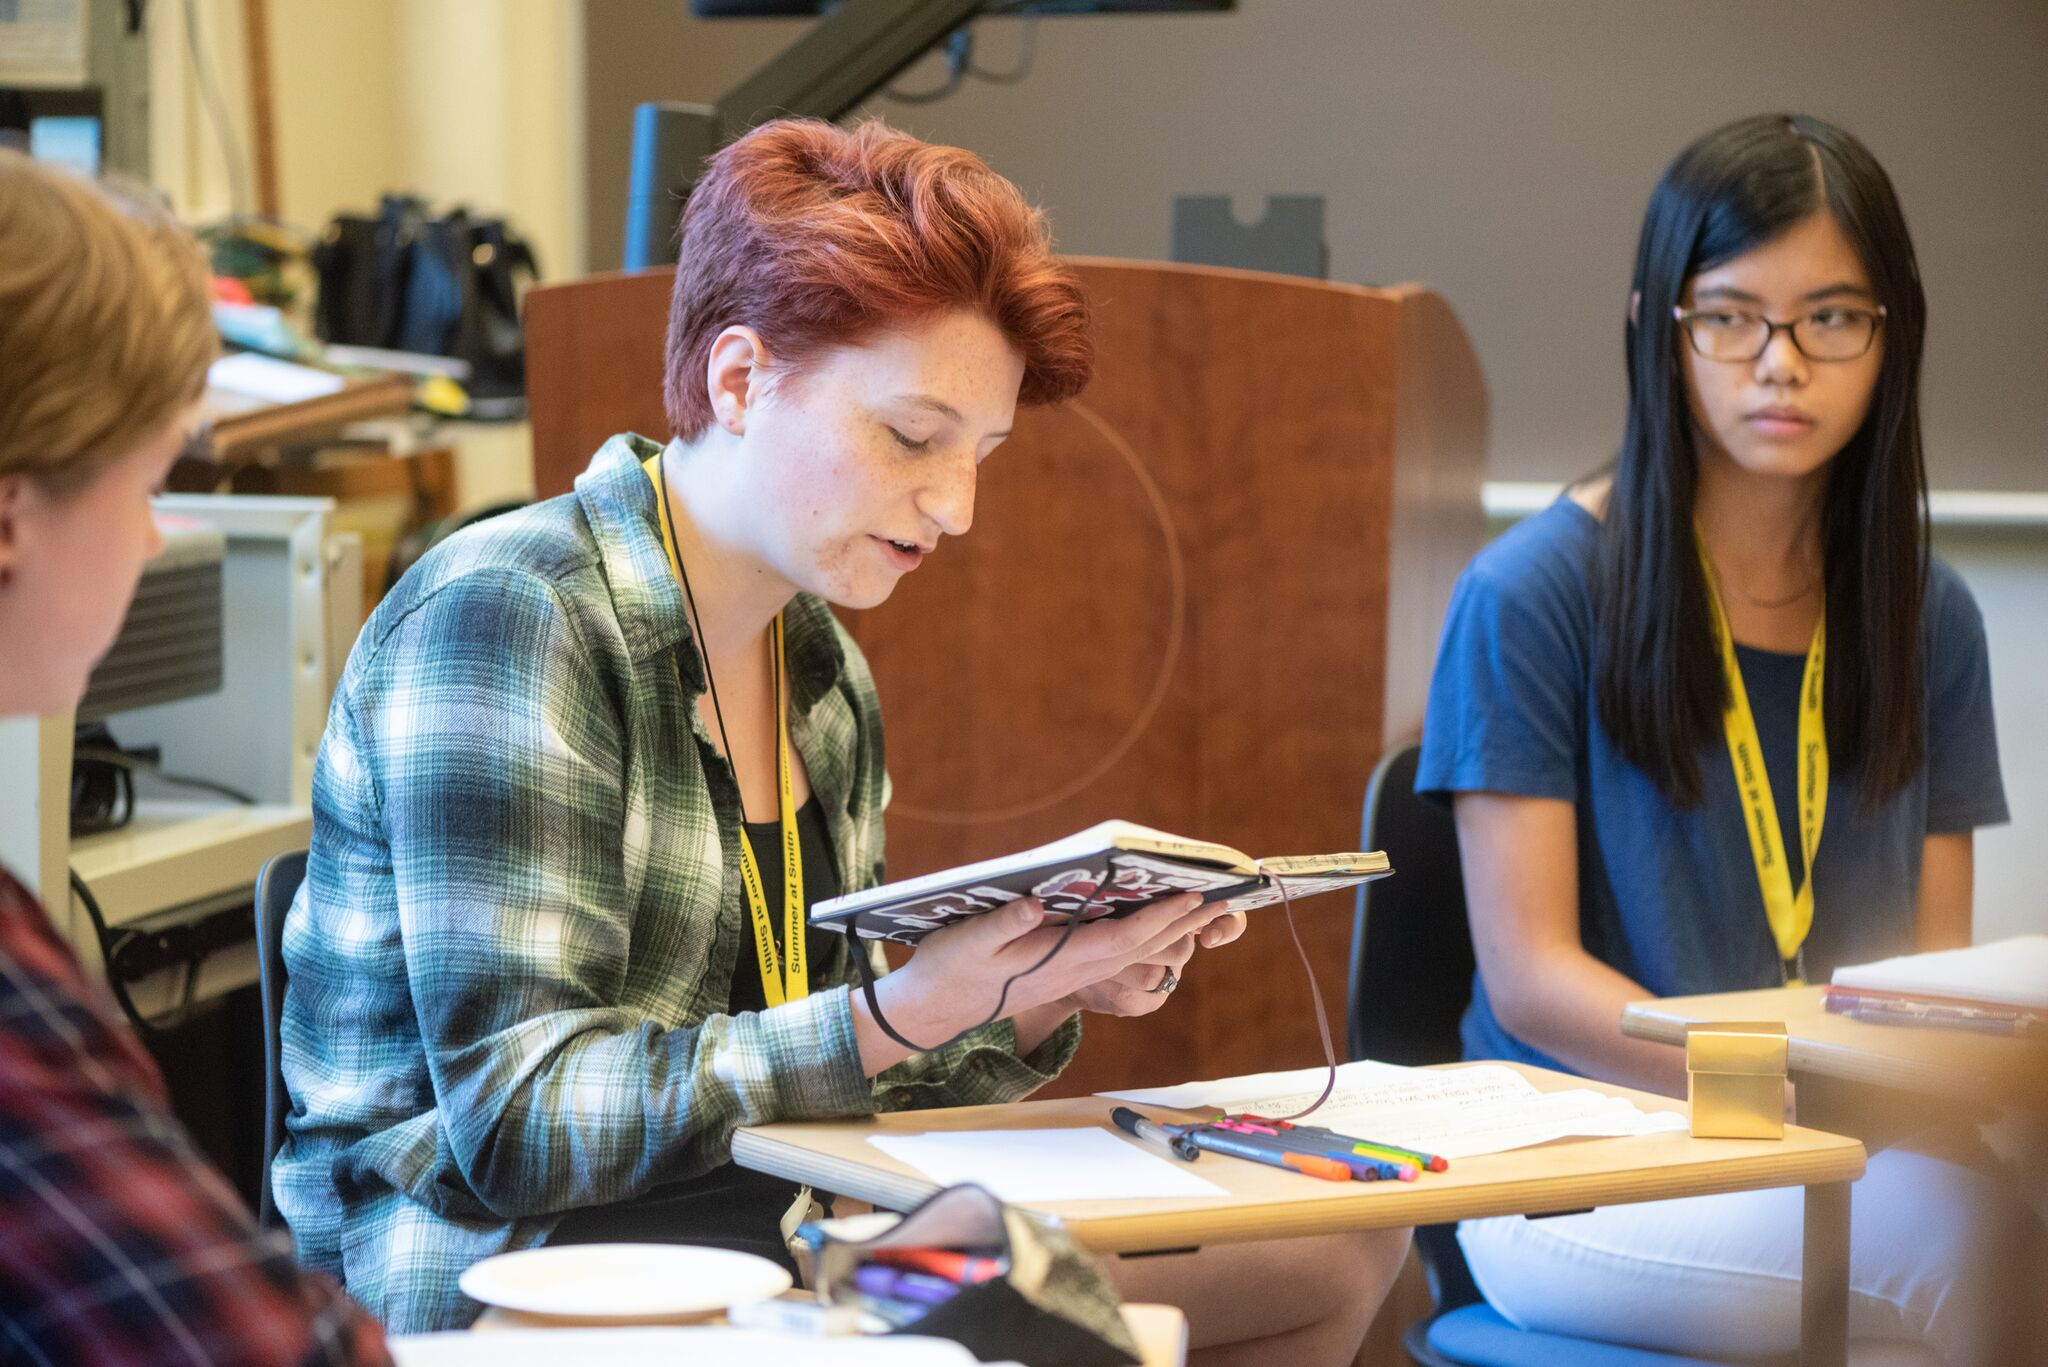 Summer Program - Pre-College | Smith Precollege Summer Programs - Young Women's Writing Workshop